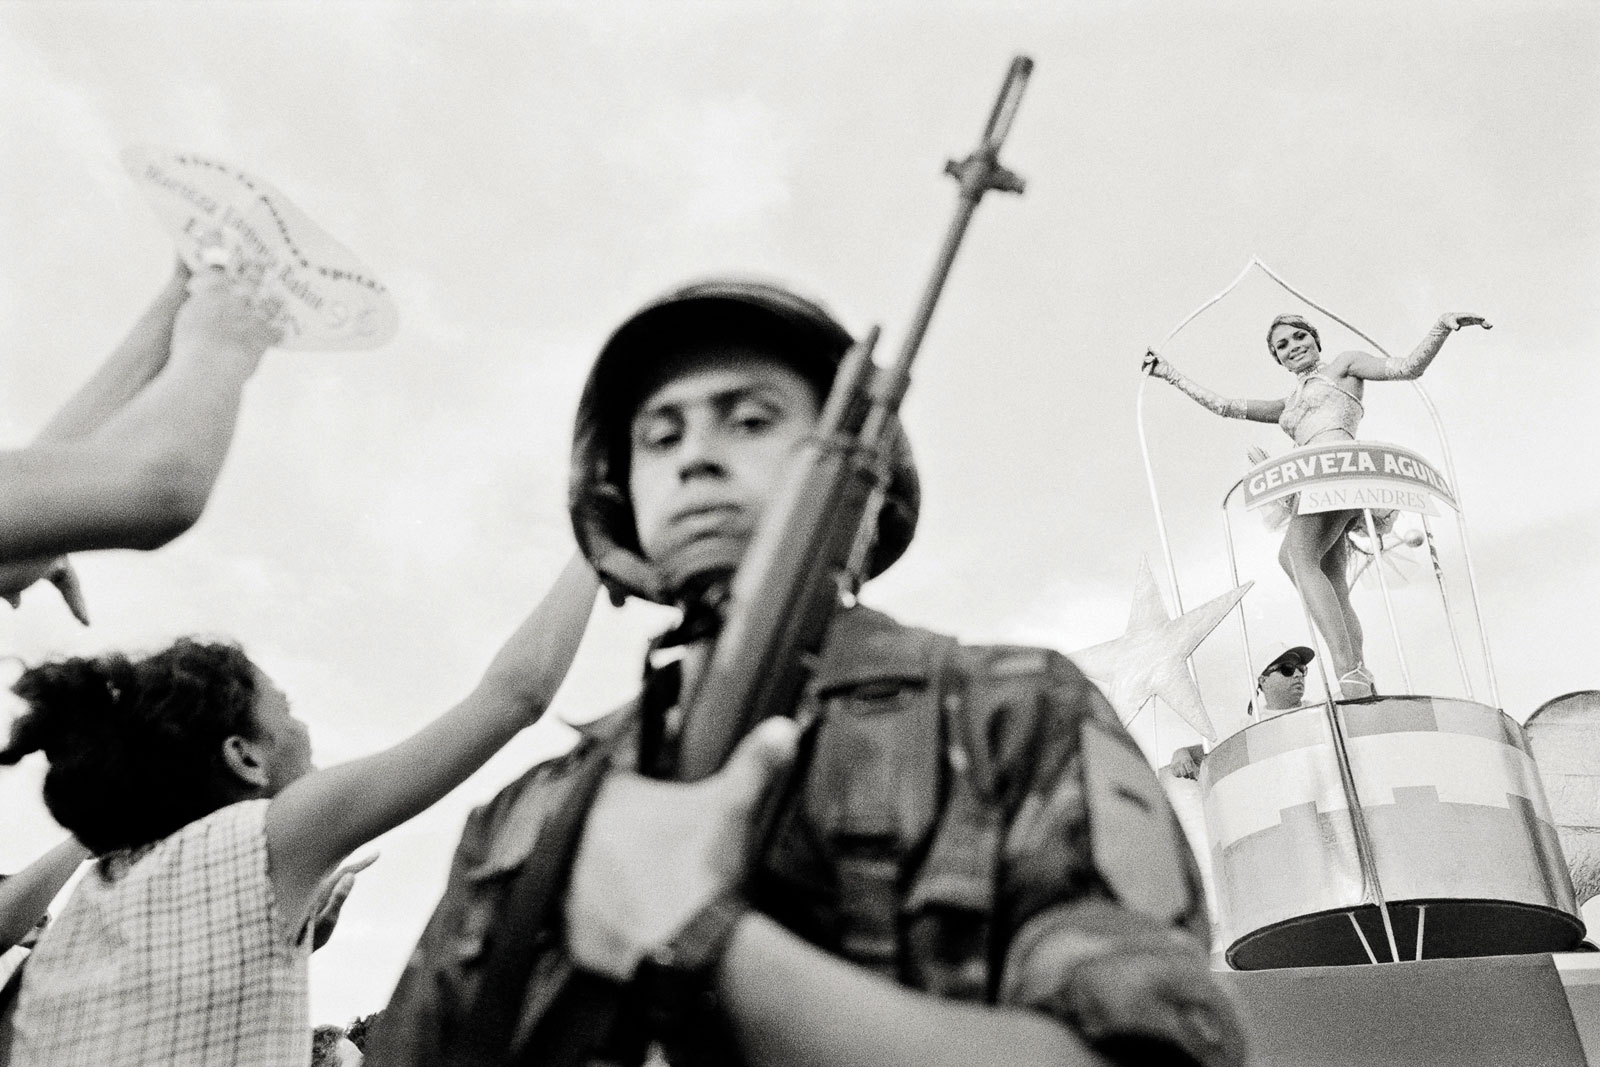 <i>Untouchable</i> (1996) At the National Beauty Contest in Cartagena, heavy ropes and tightly spaced soldiers must routinely push back spectators to make room for the floats